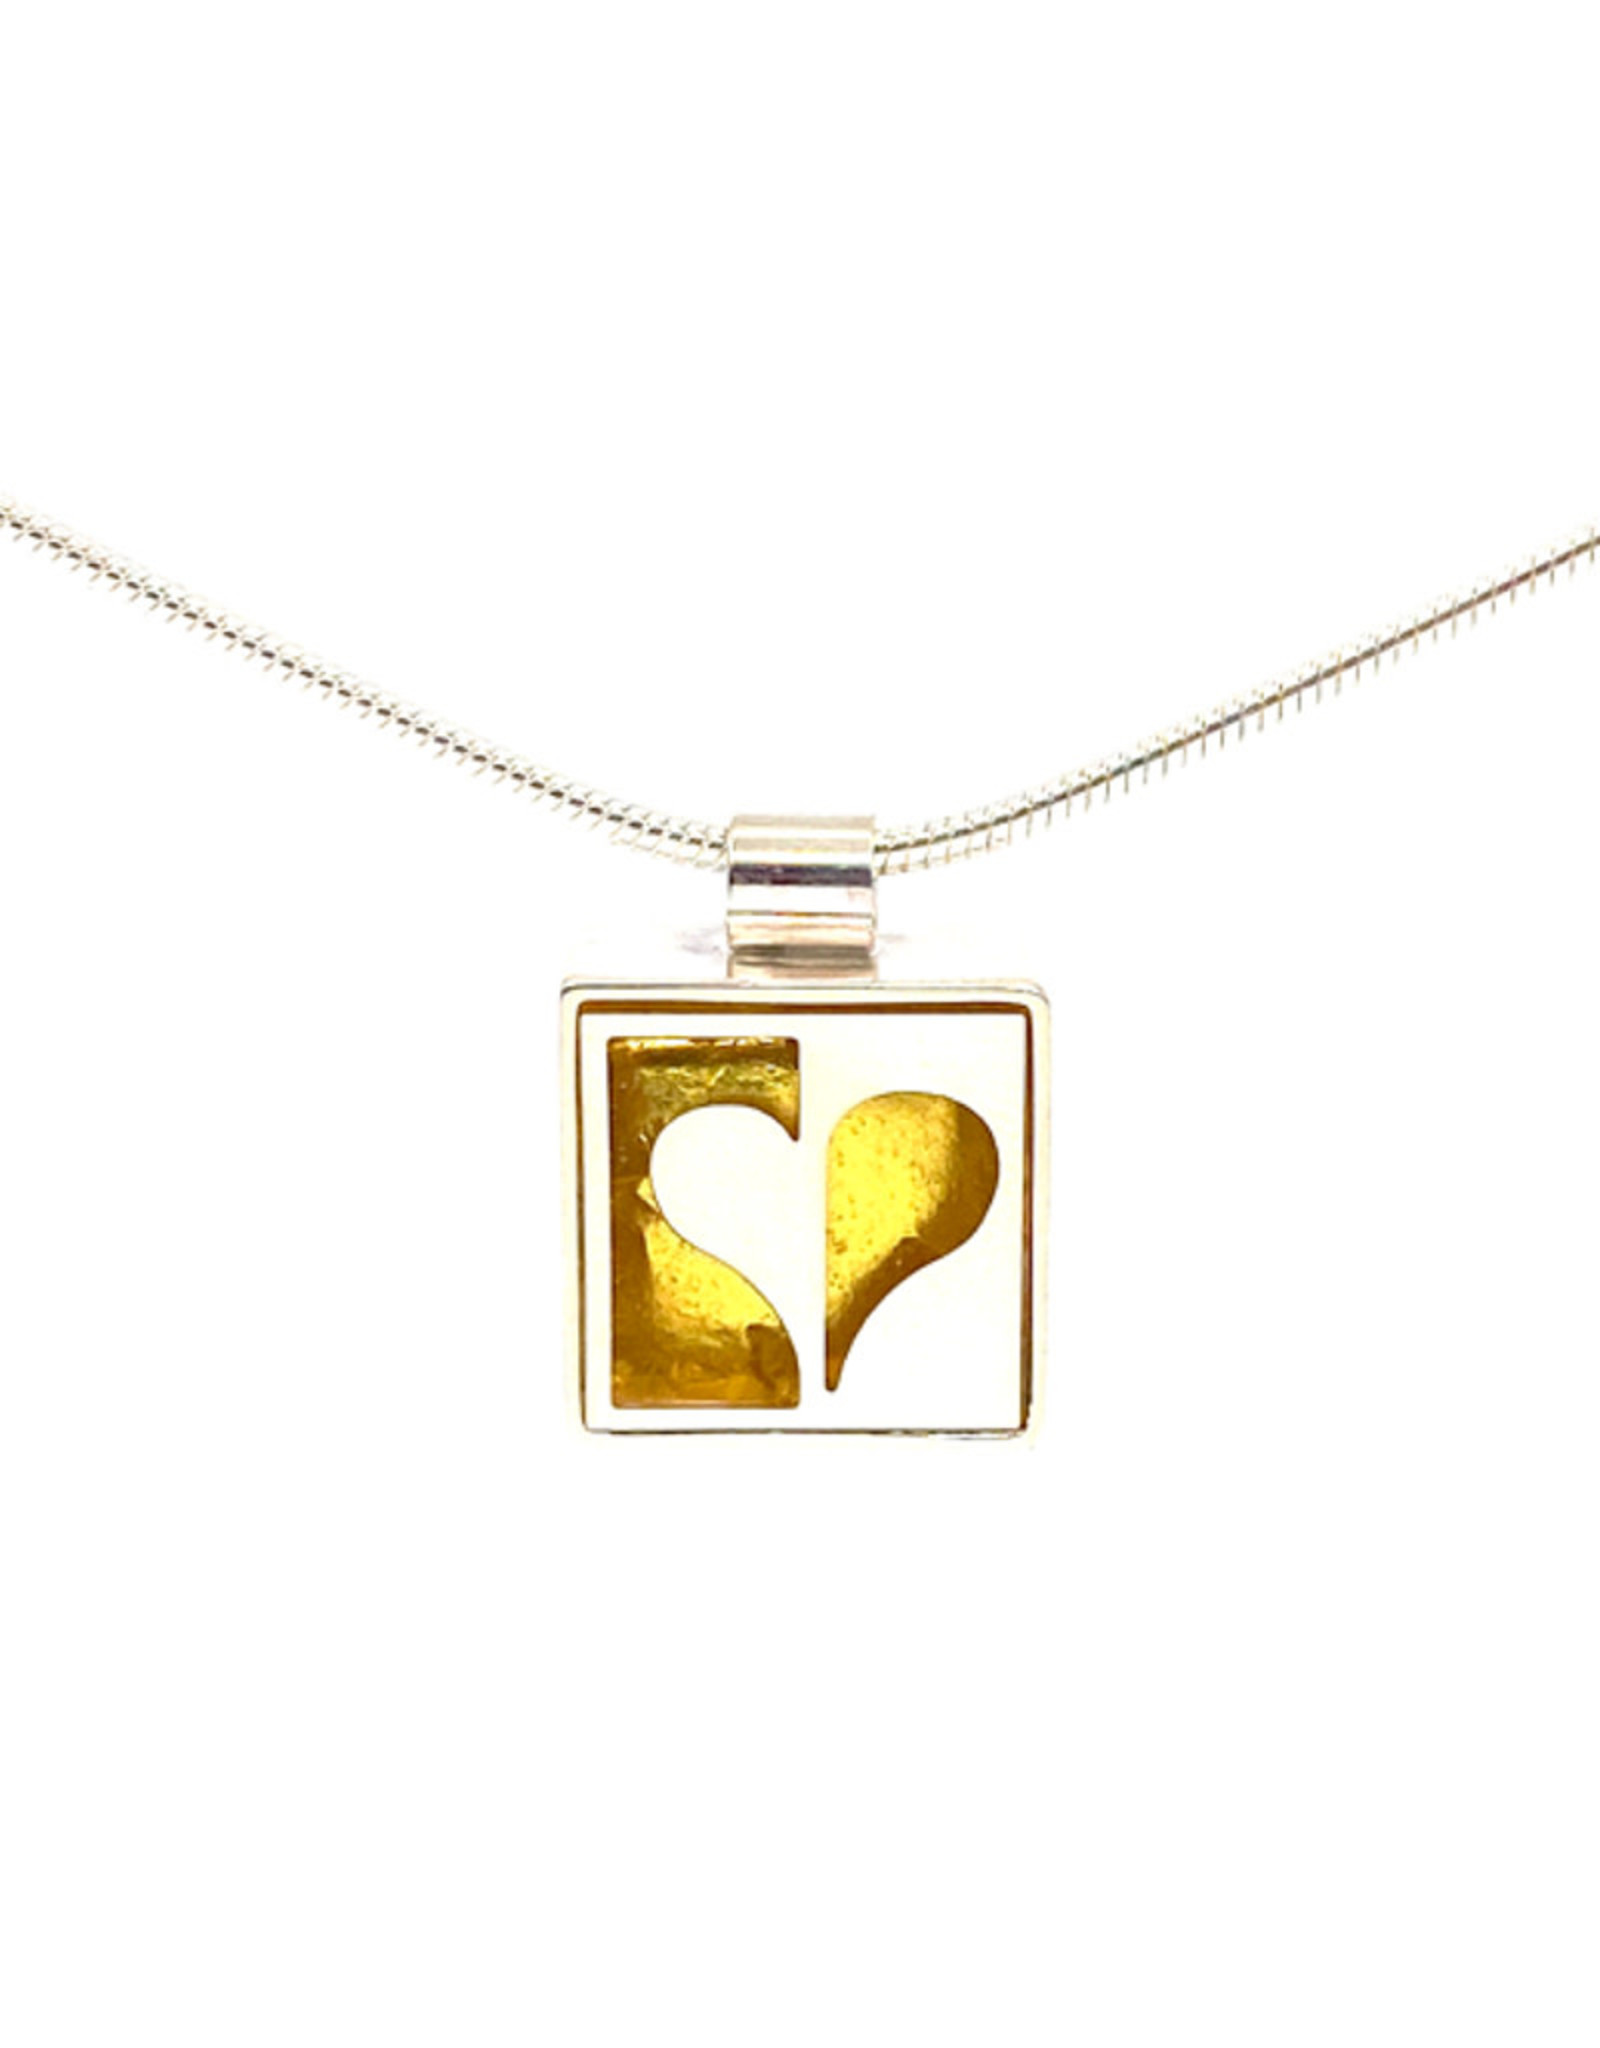 VICTORIA VARGA HALF HEART NECKLACE